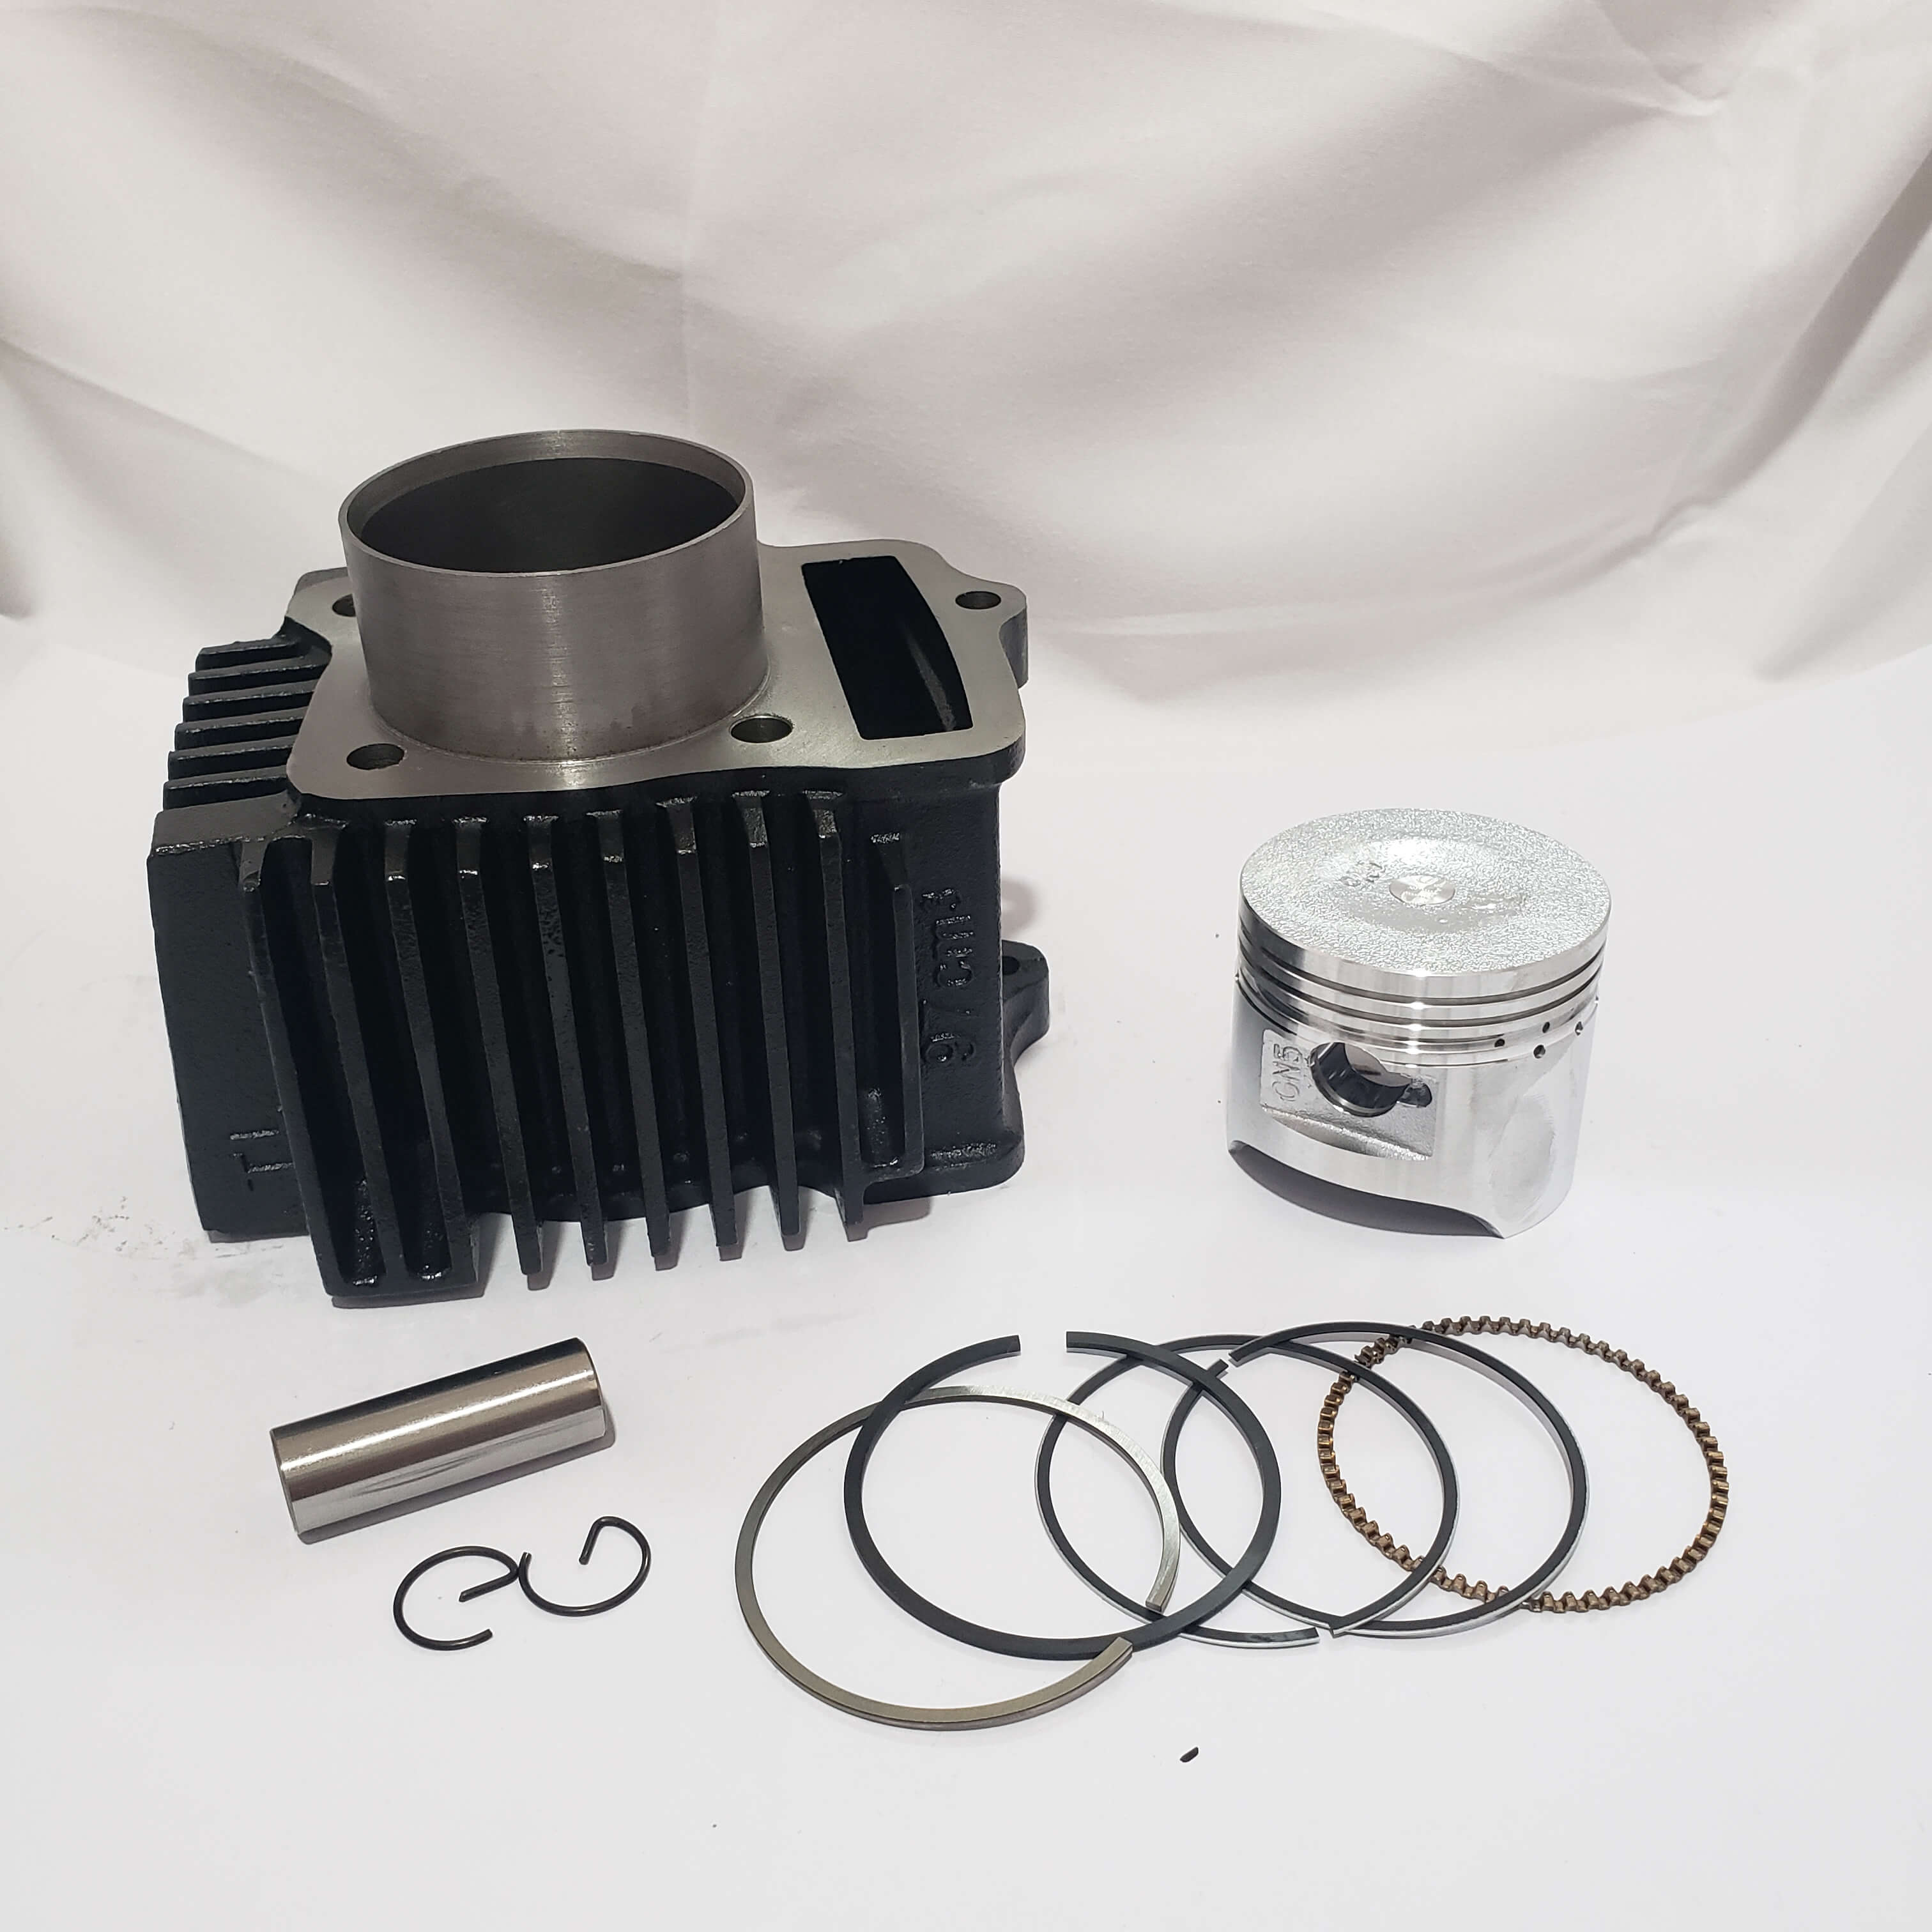 DREAM SUPRA GRAND EX5 <strong>C100</strong> GN5 50 53 54 55 56MM MOTORCYCLE CYLINDER KIT Thailand model